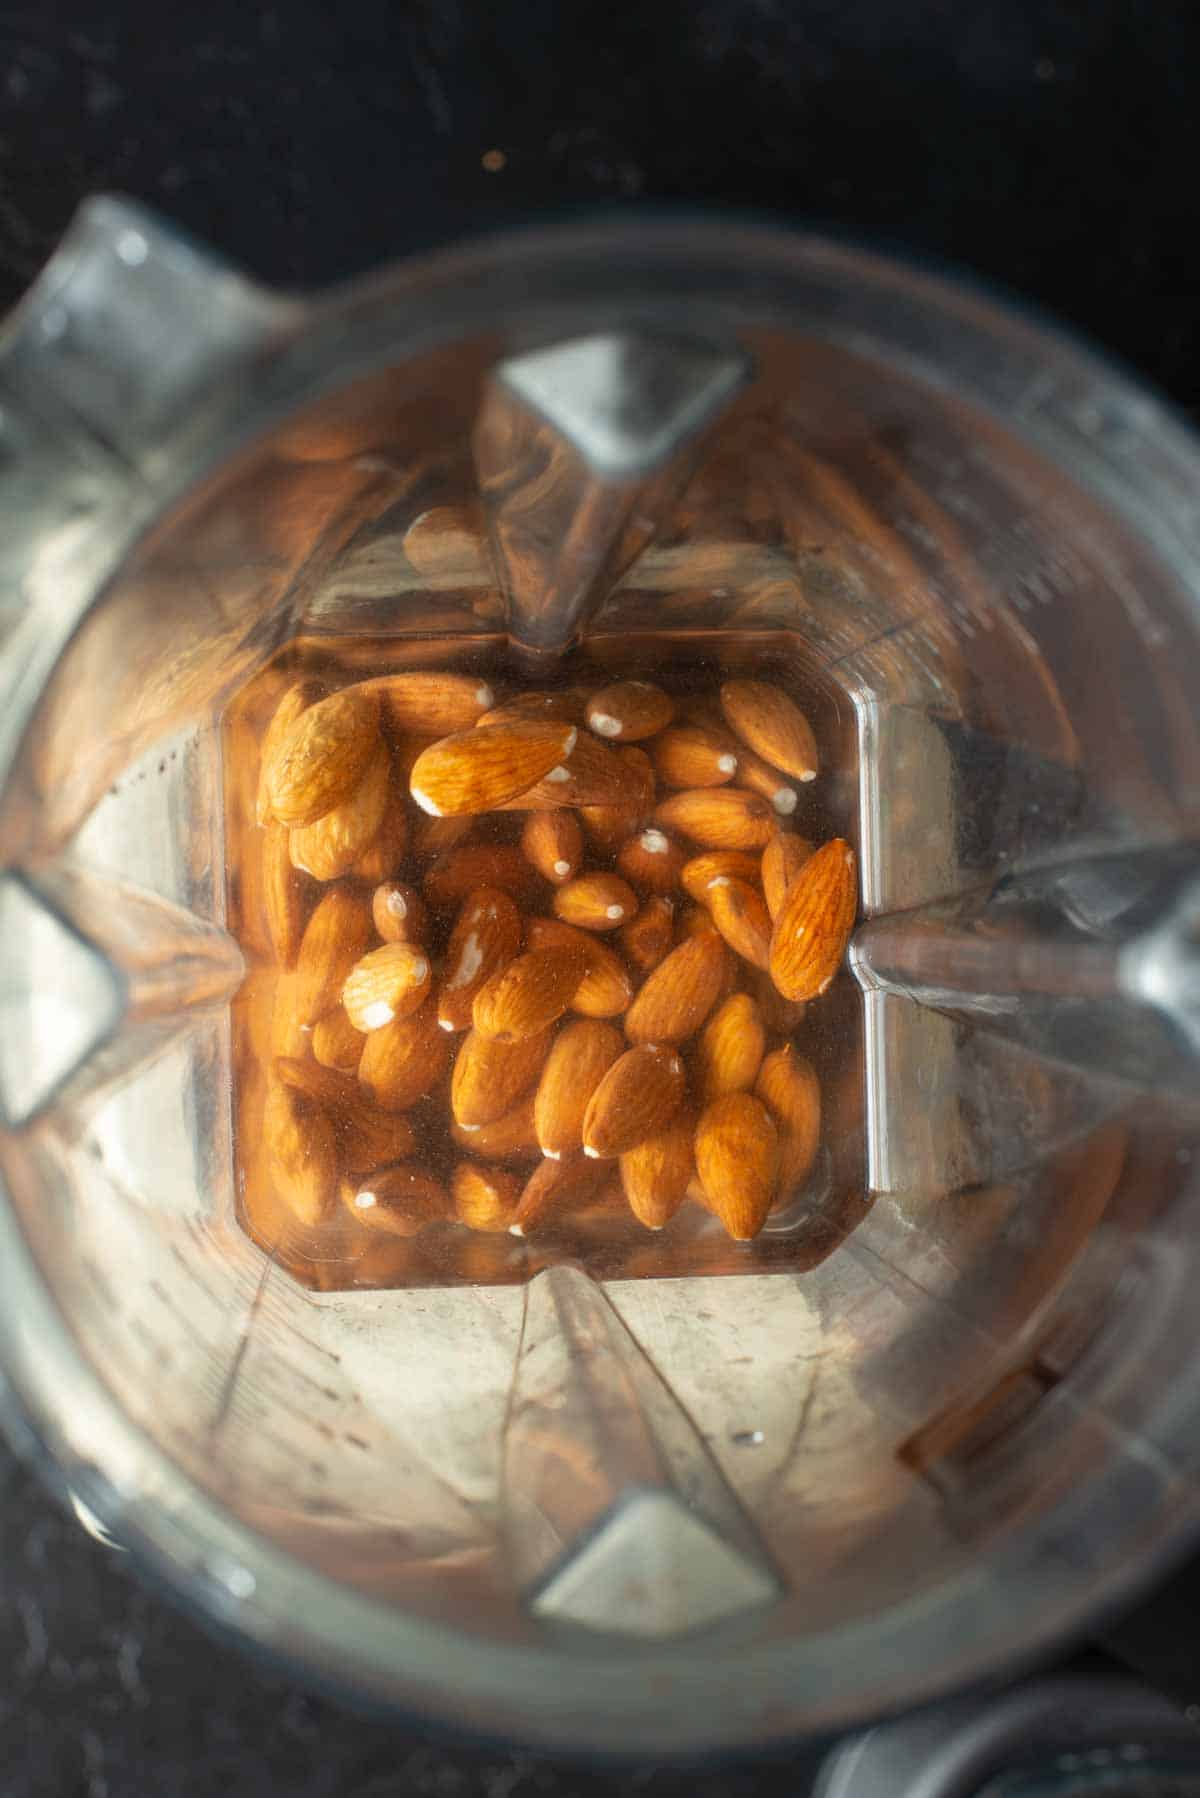 Image of the almonds soaked in water